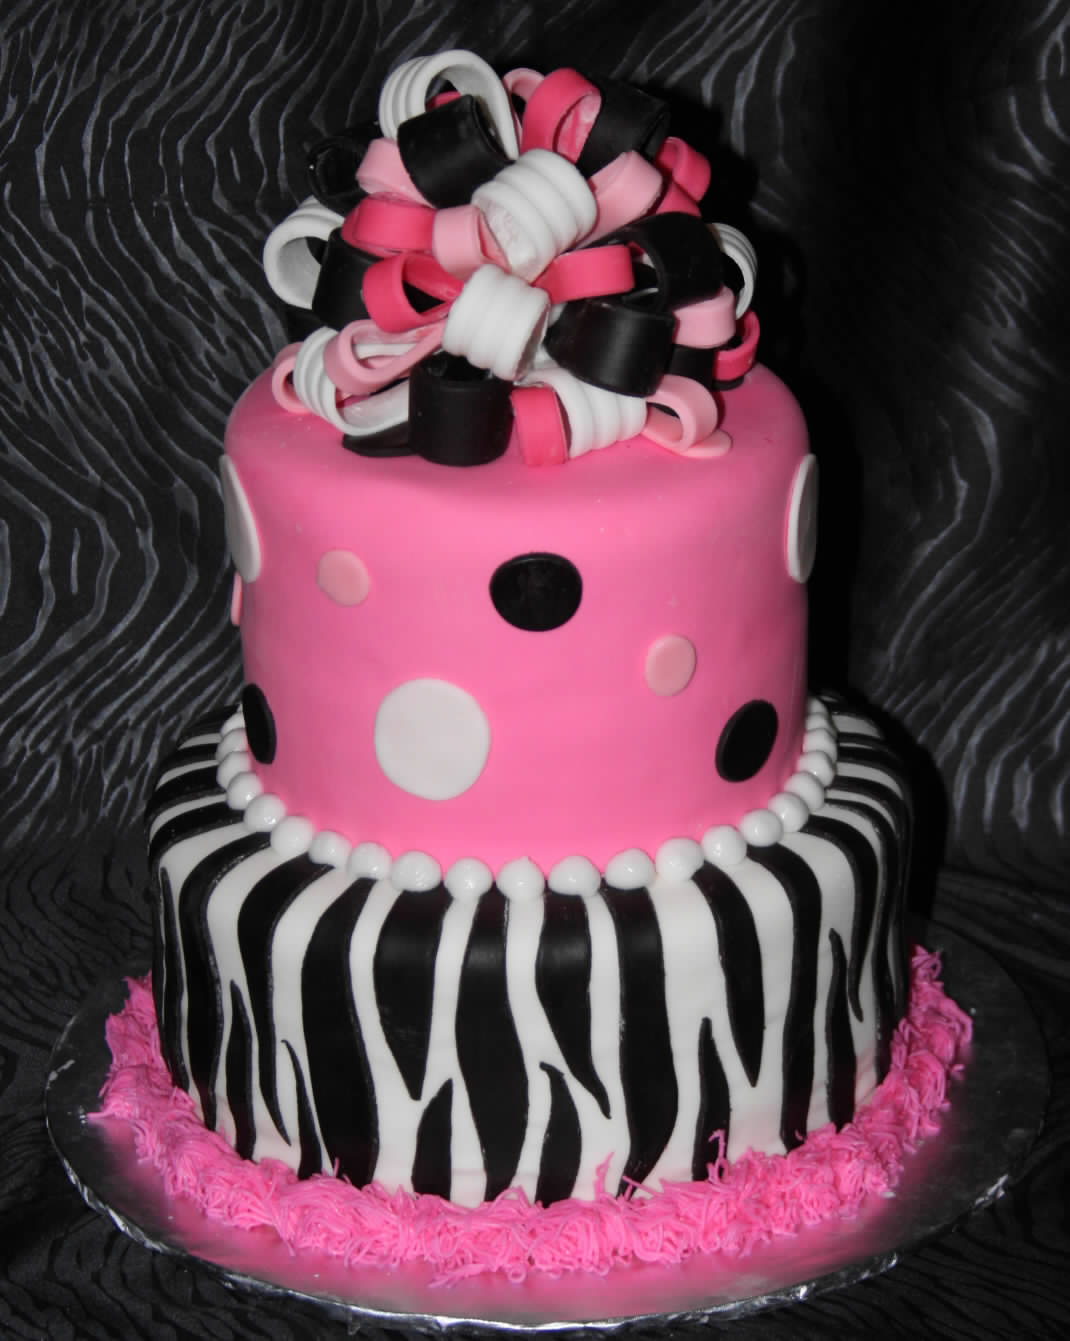 Zebra Design Birthday Cake : me-haMiza-says